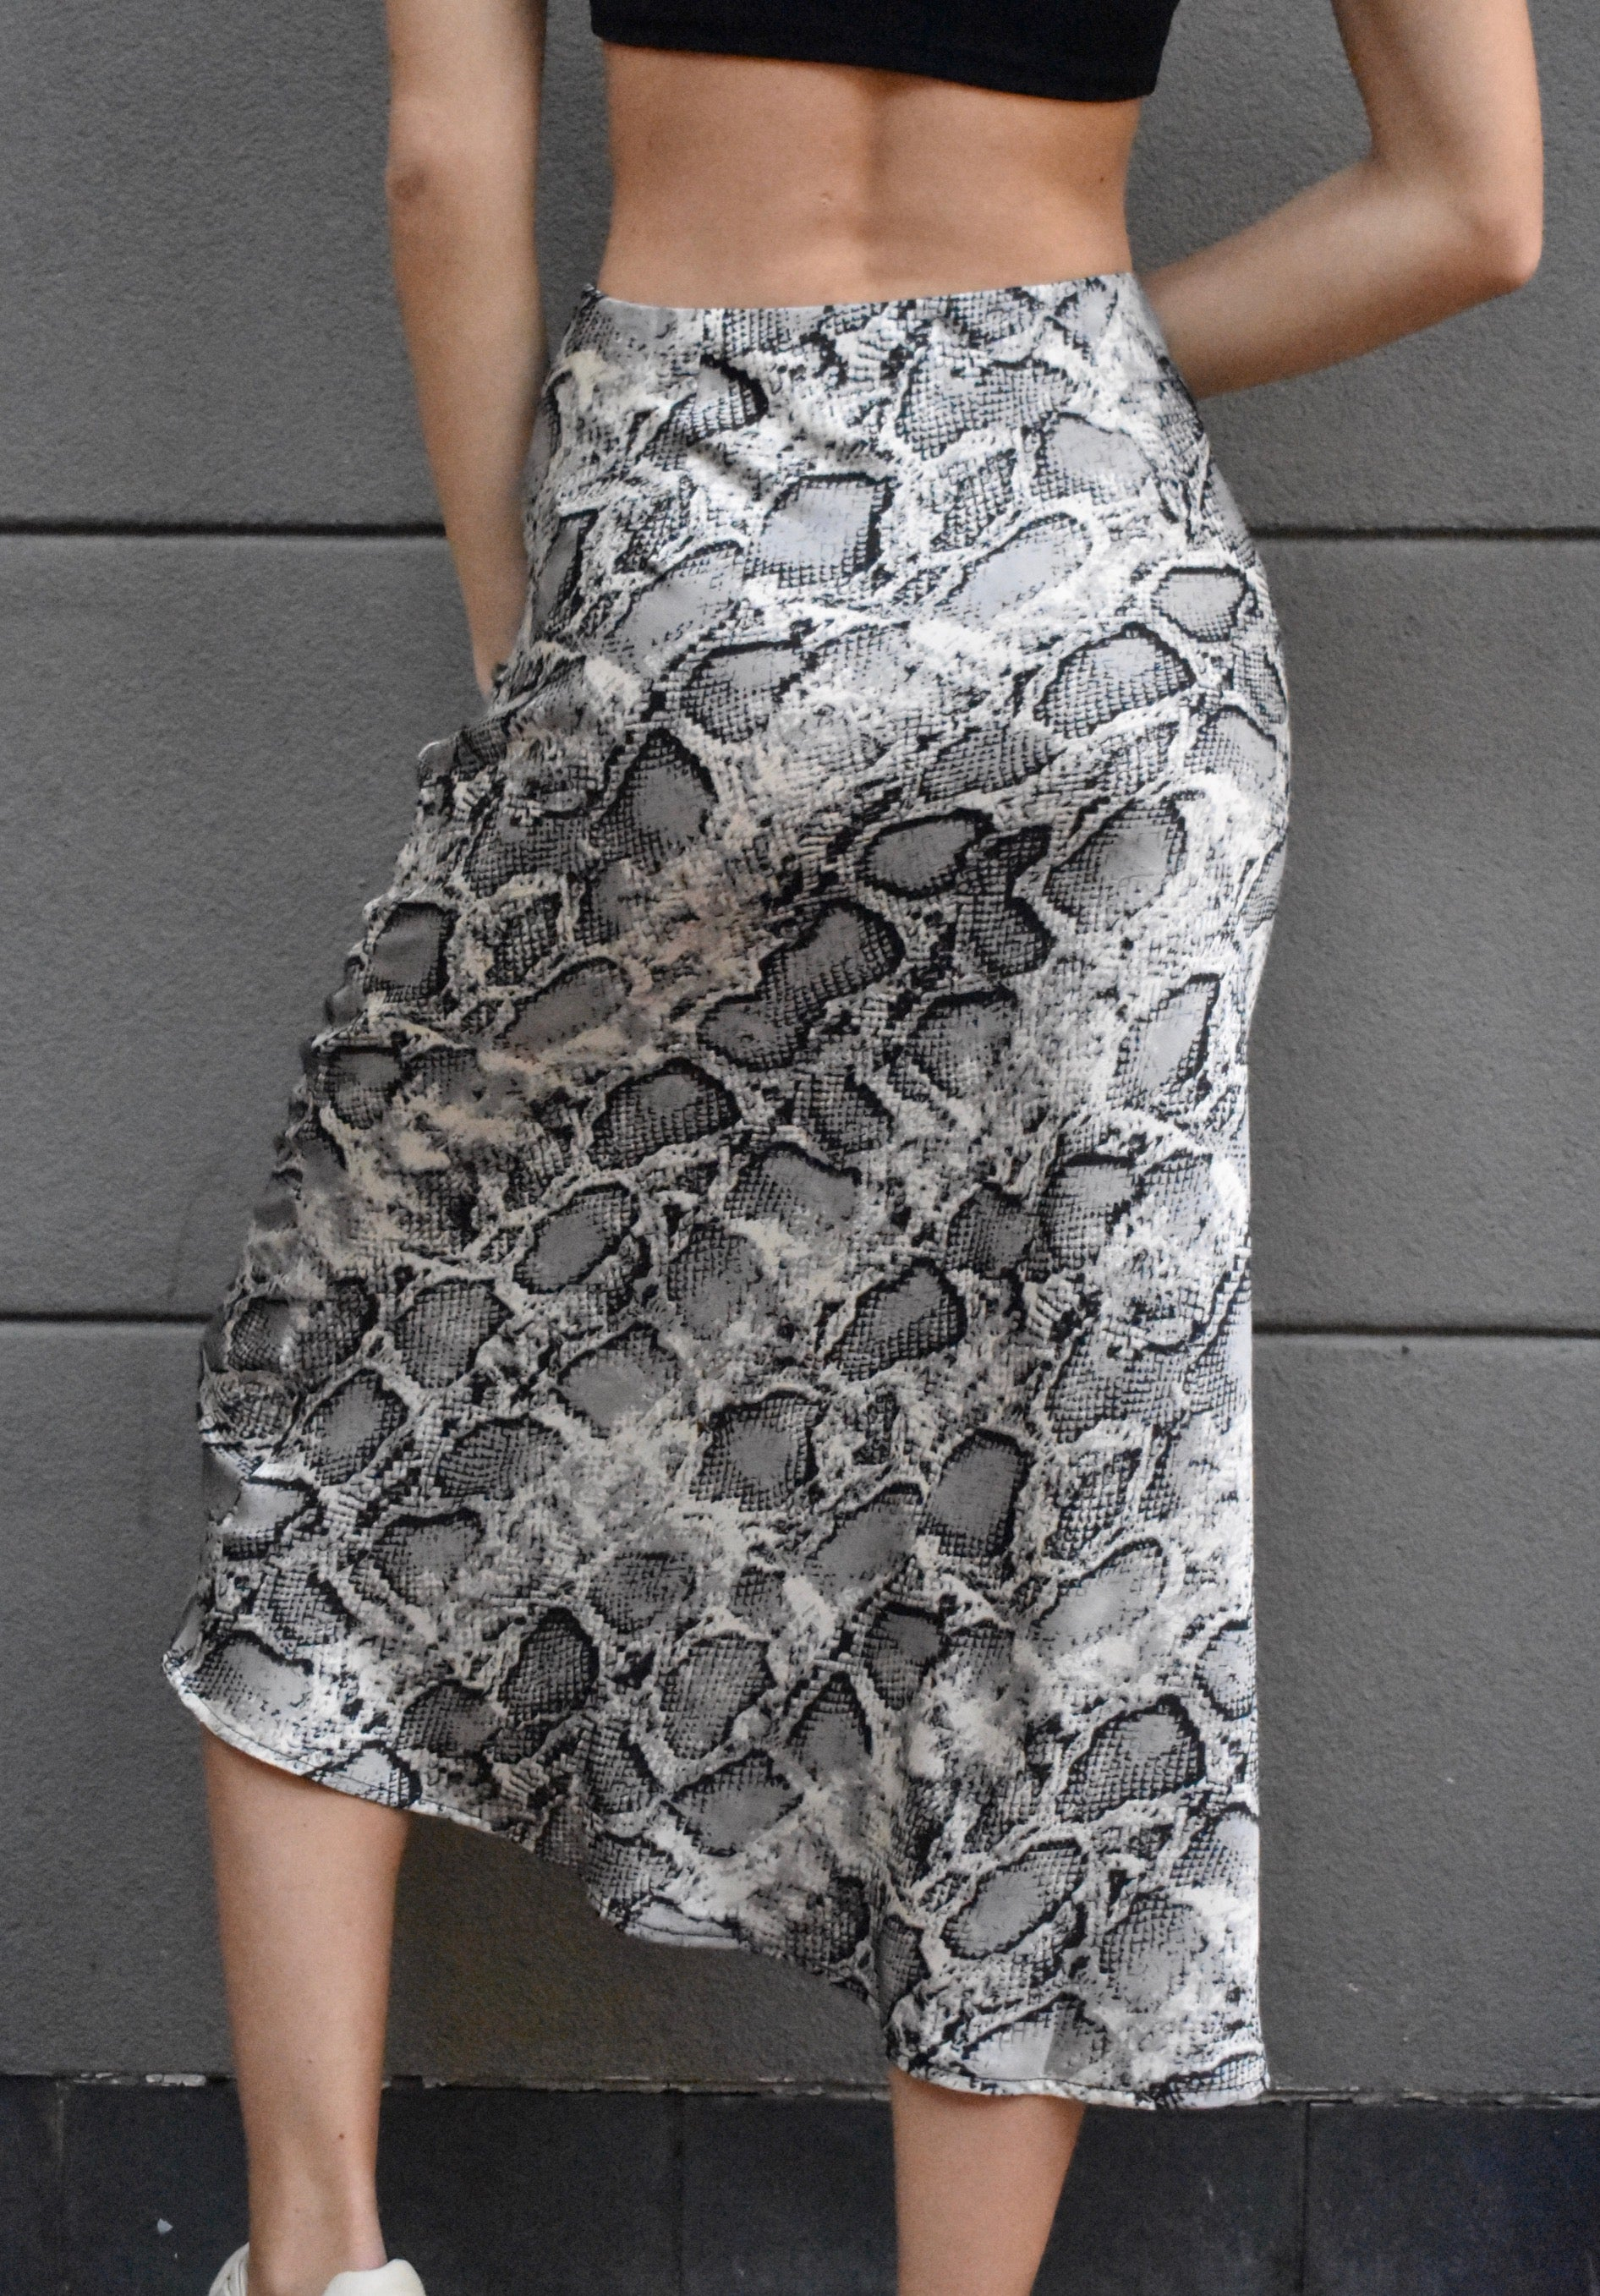 """Snakes & Lovers"" Skirt"